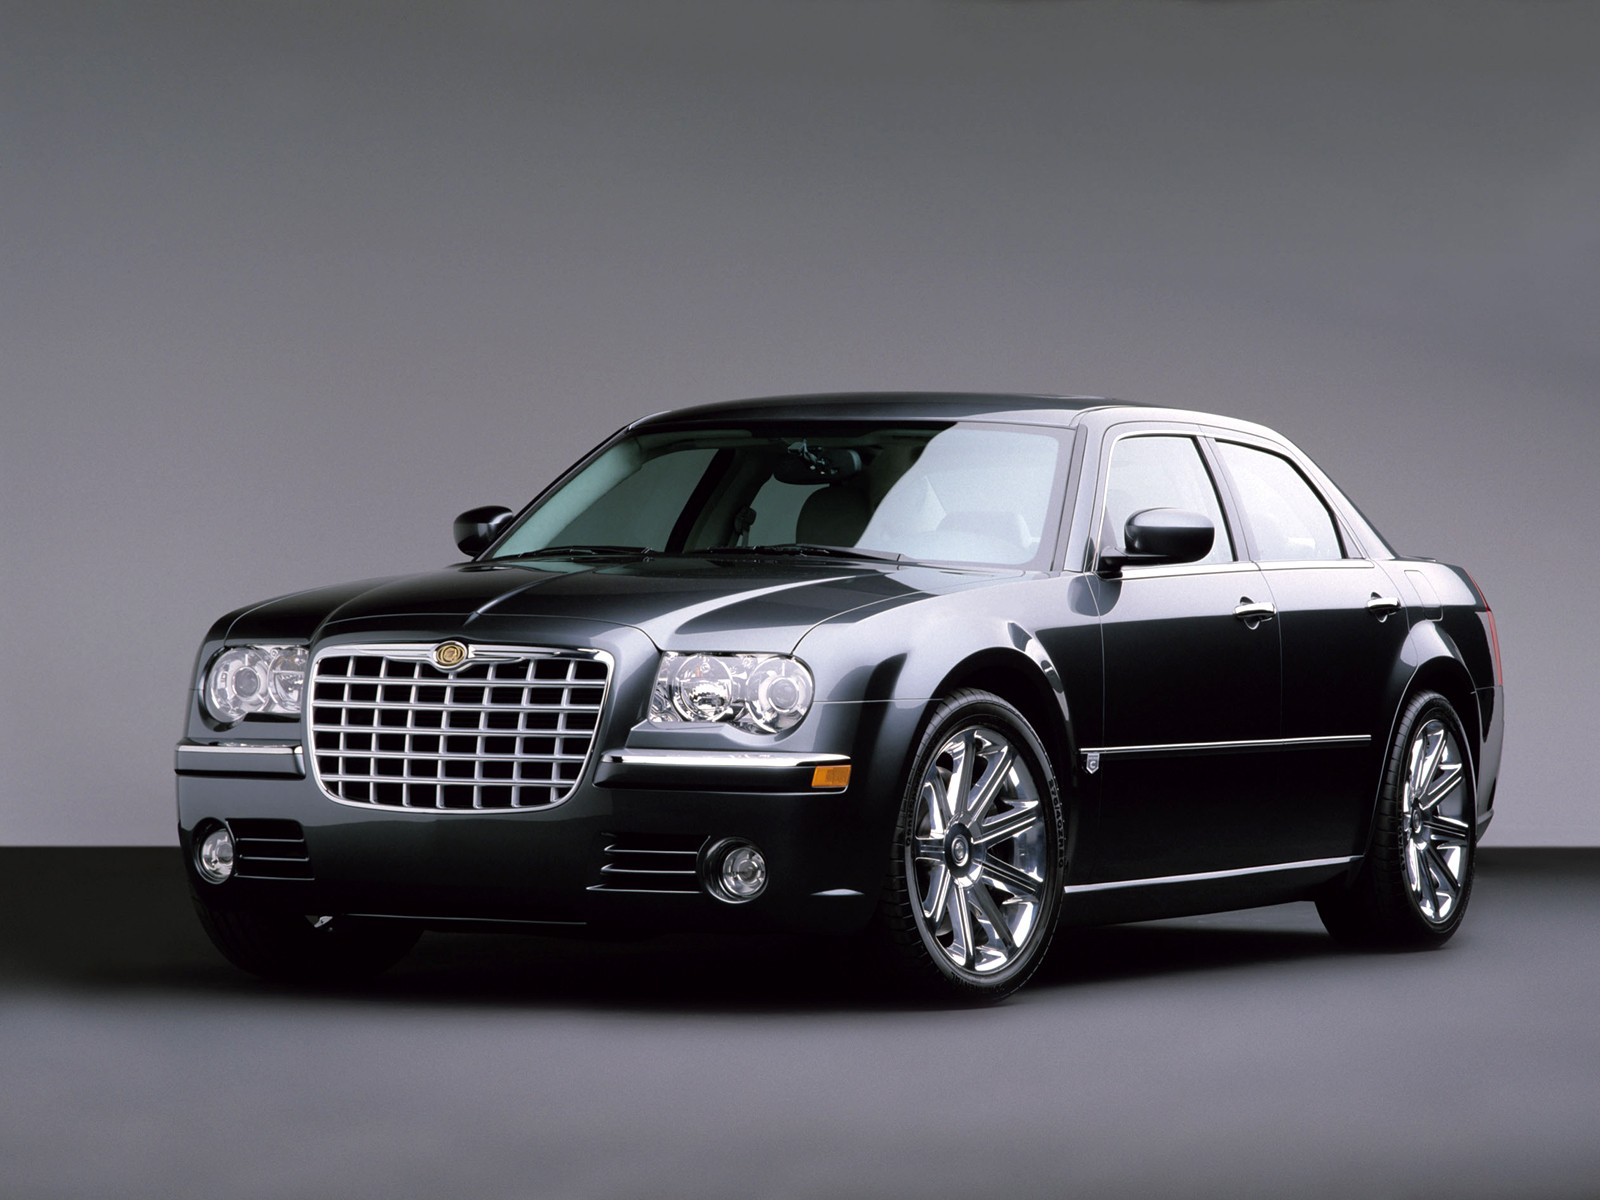 CHRYSLER 300C WALLPAPER